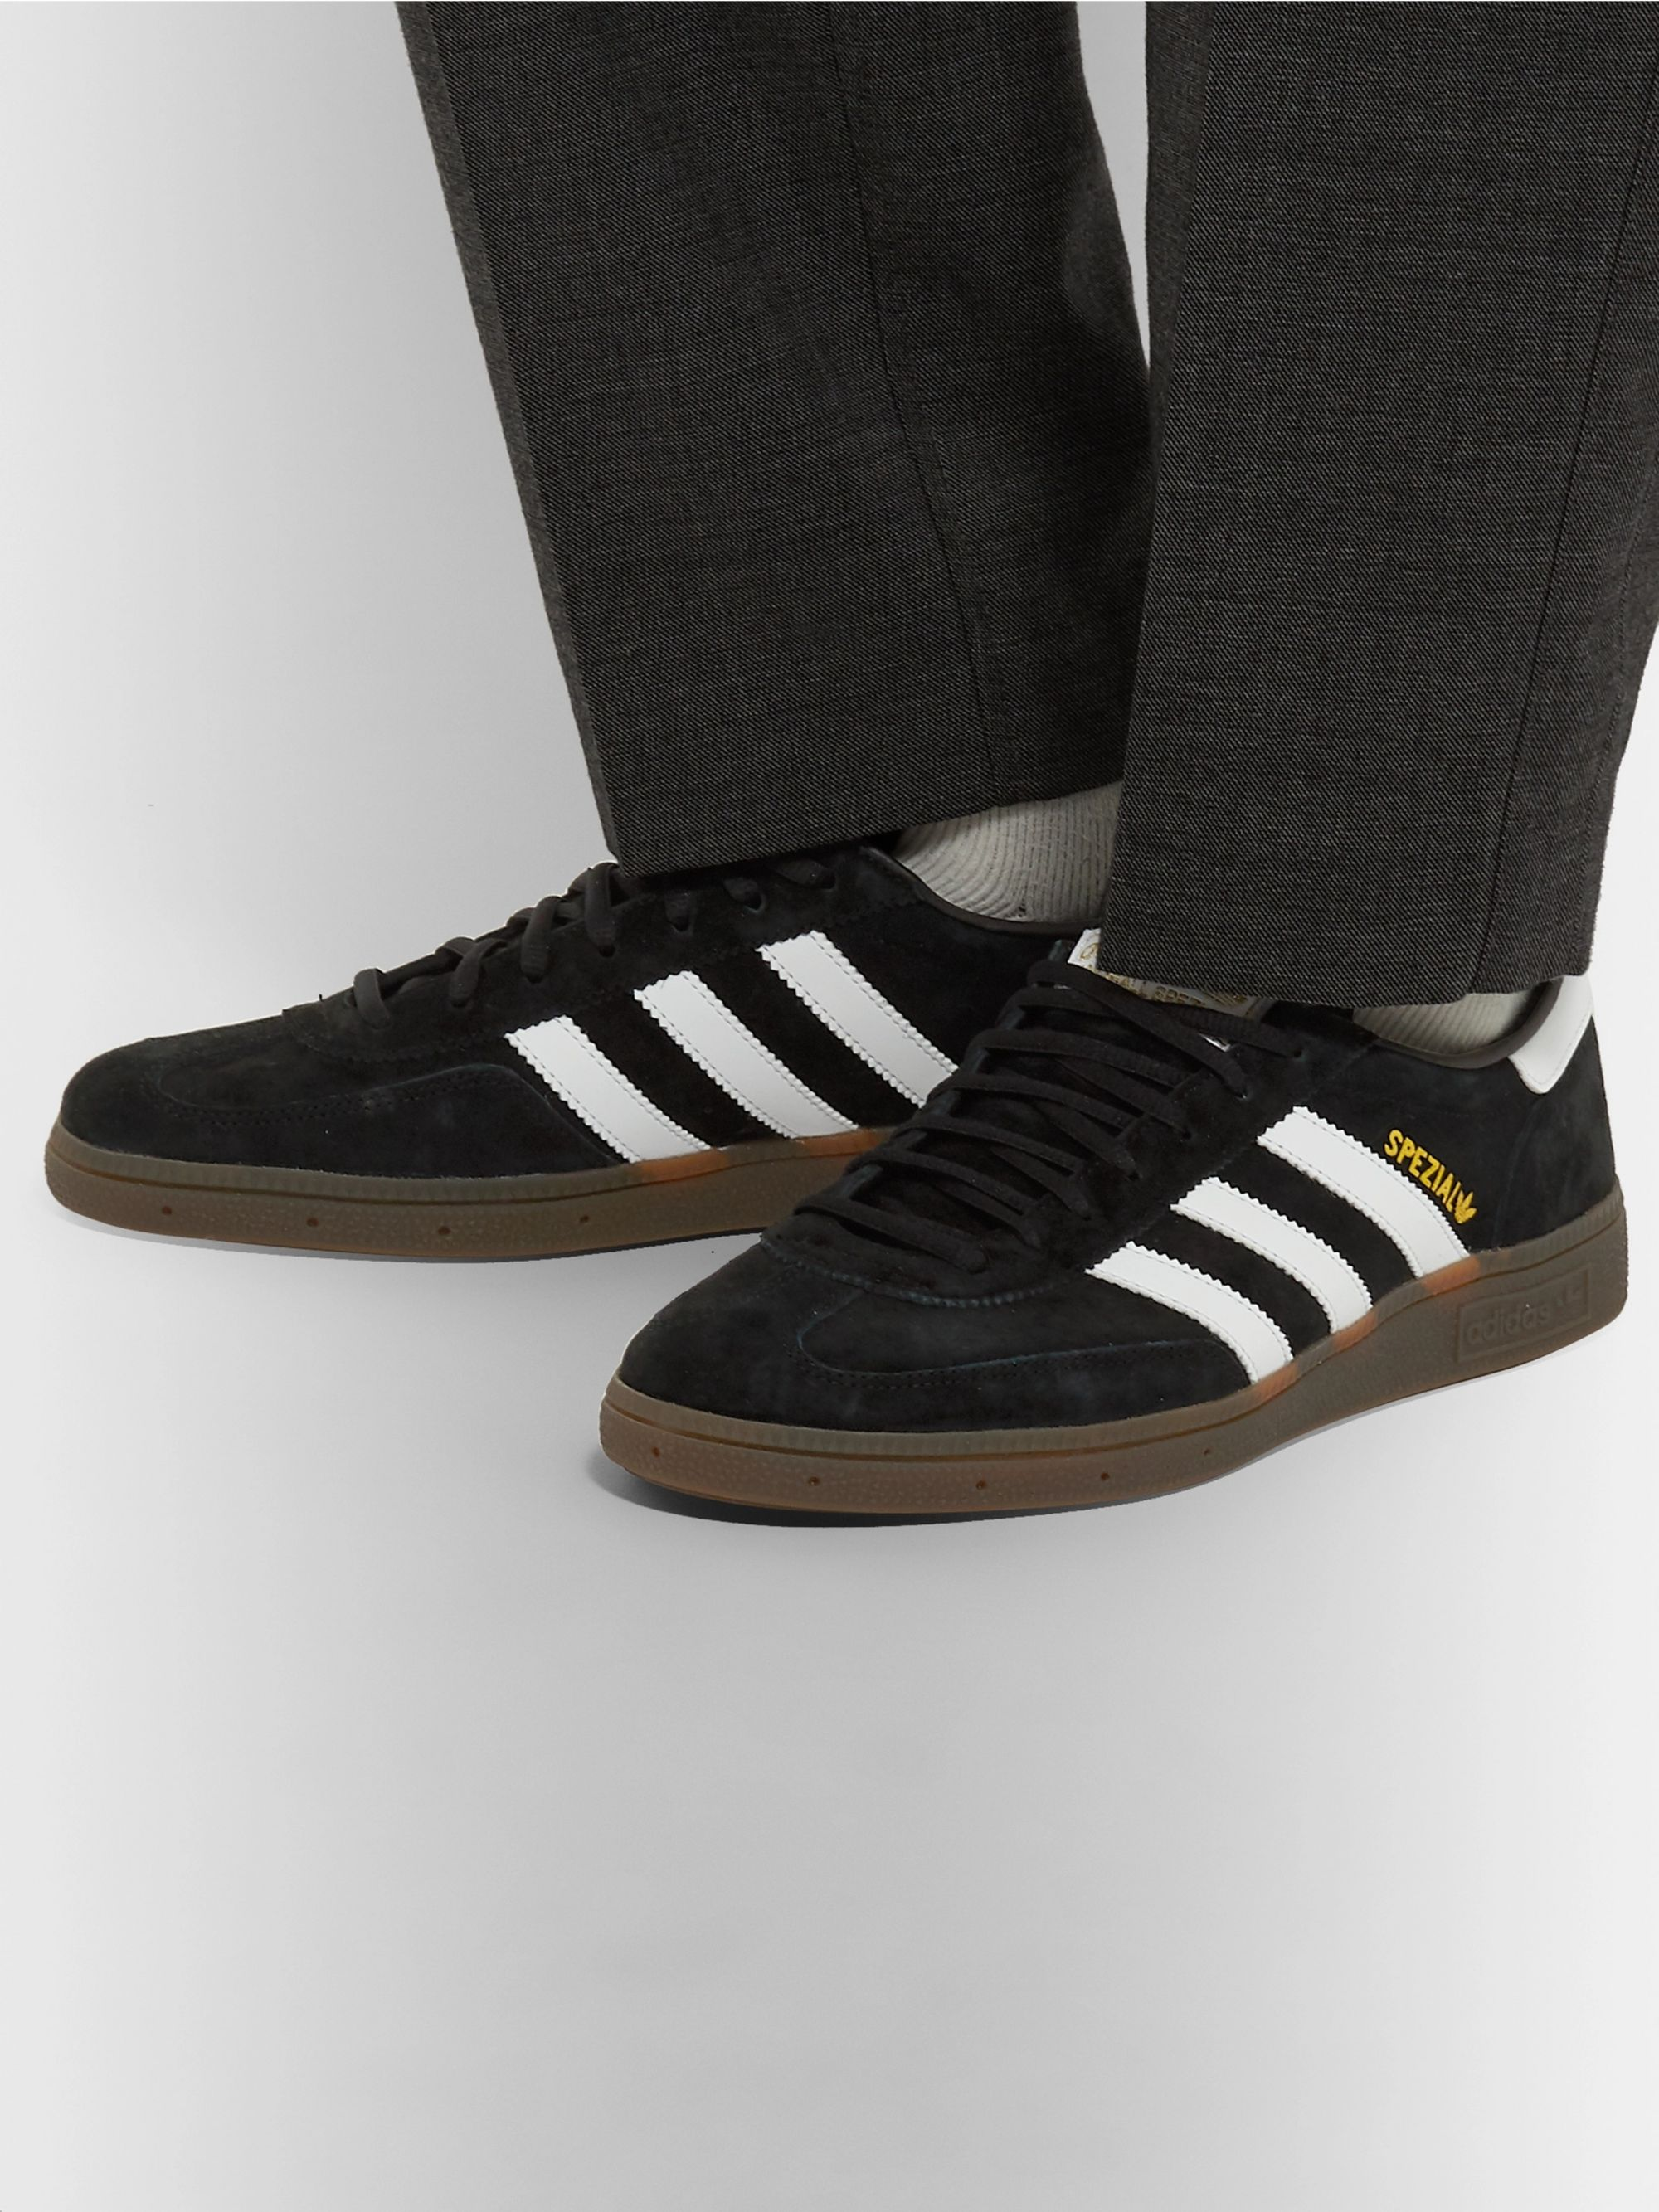 Black Handball Spezial Suede and Leather Sneakers | adidas